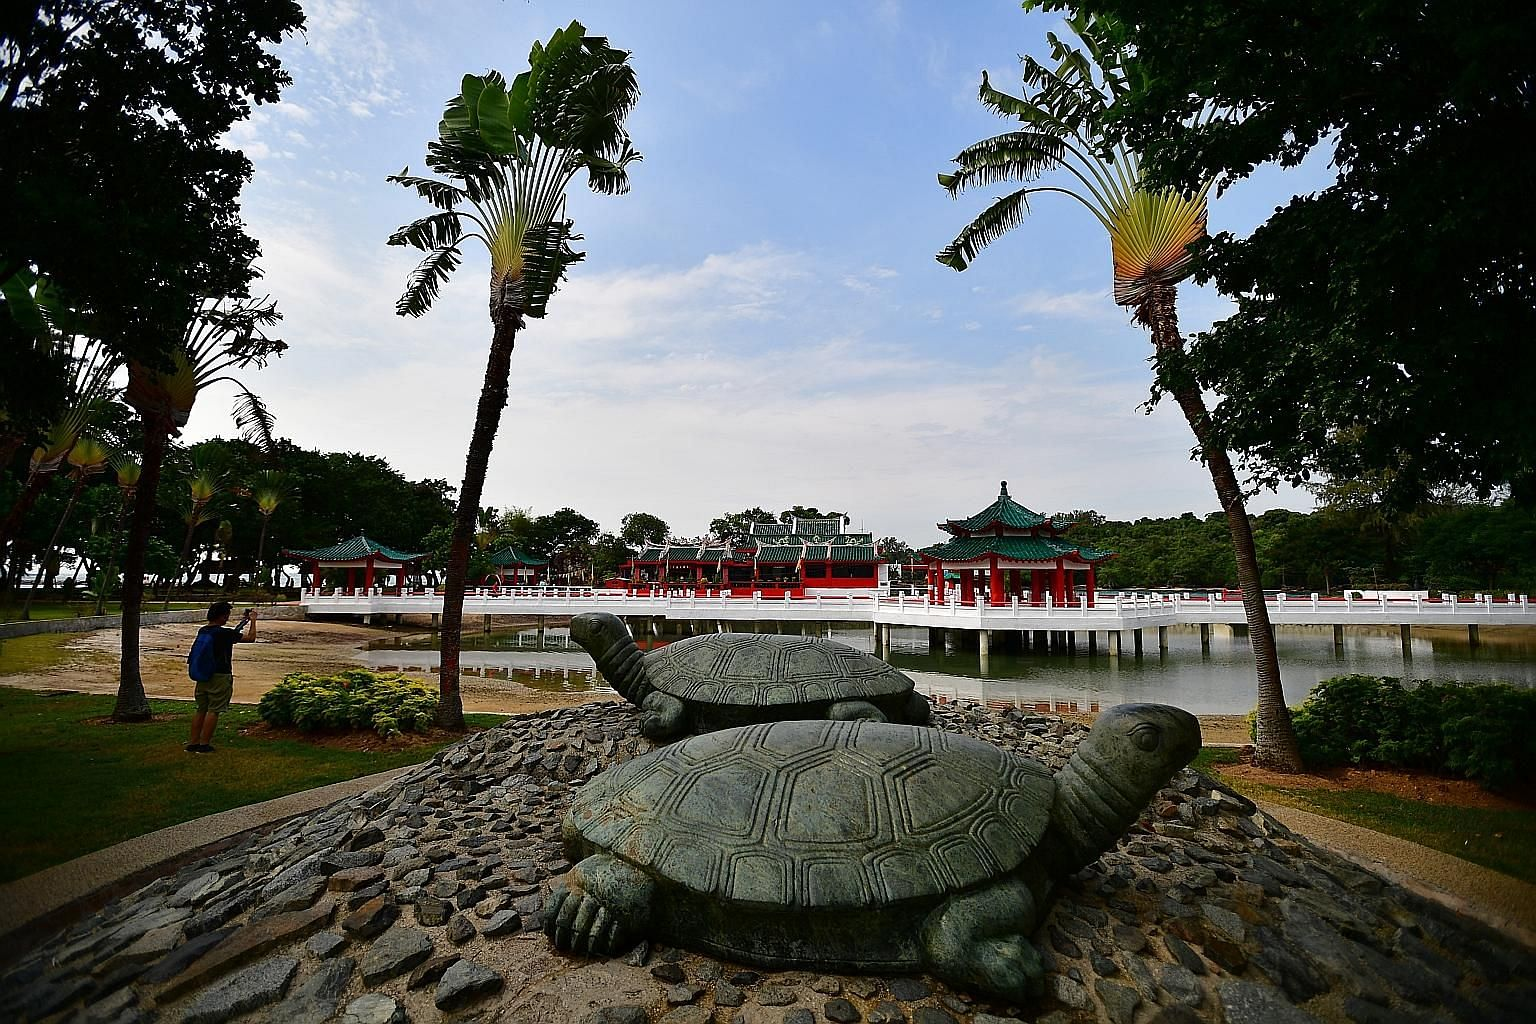 A 2017 file photo of the turtle sculptures and Da Bo Gong (Tua Pek Kong) Temple on Kusu Island, which is also home to three Malay shrines. During the upcoming pilgrimage season from Oct 17 to Nov 14, only 500 visitors a day will be allowed on the isl